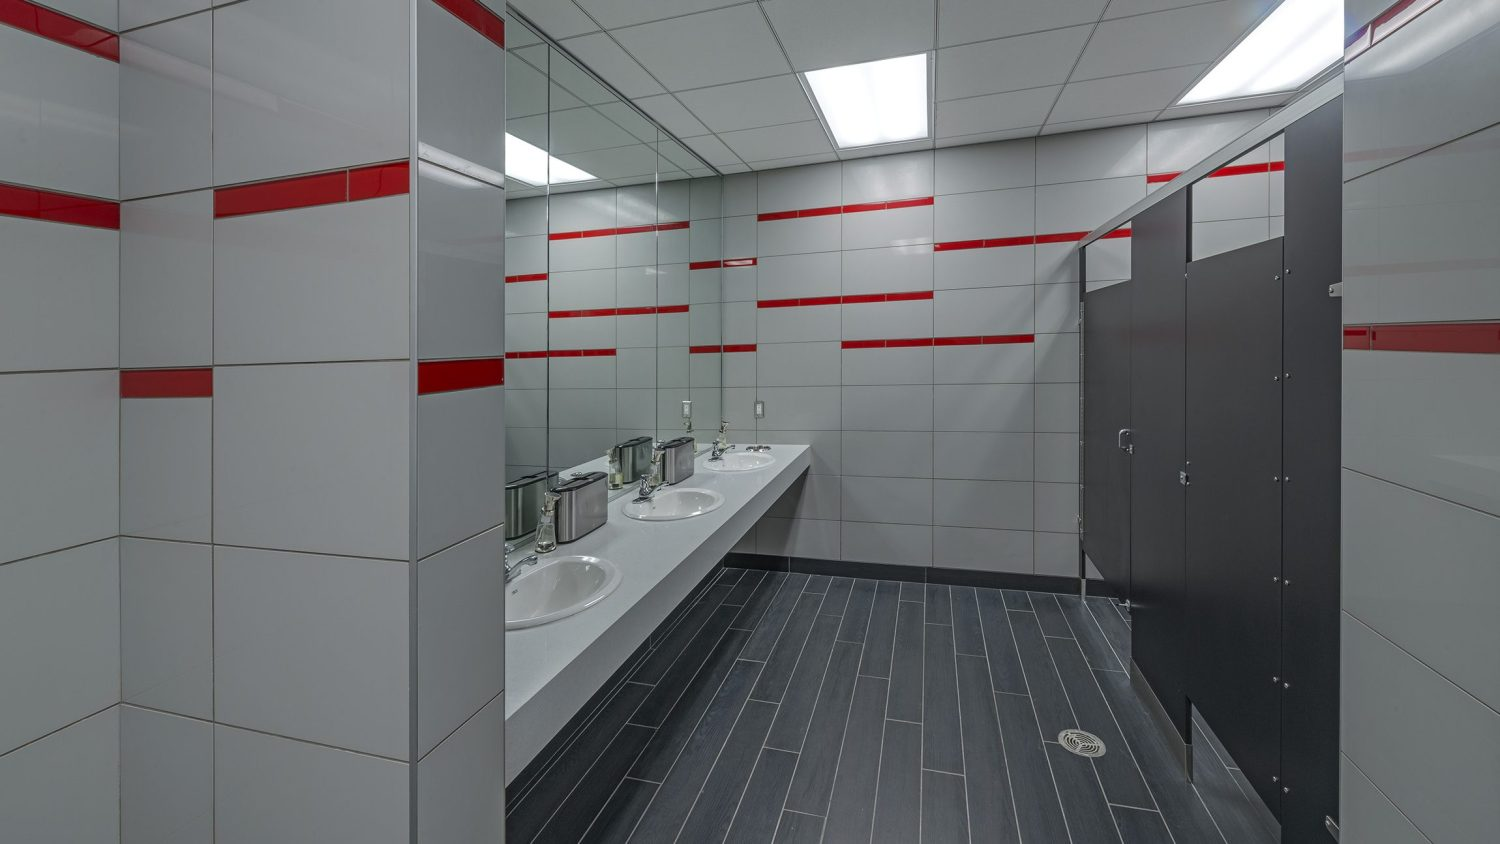 University of Houston Indoor Football Facility - Restroom